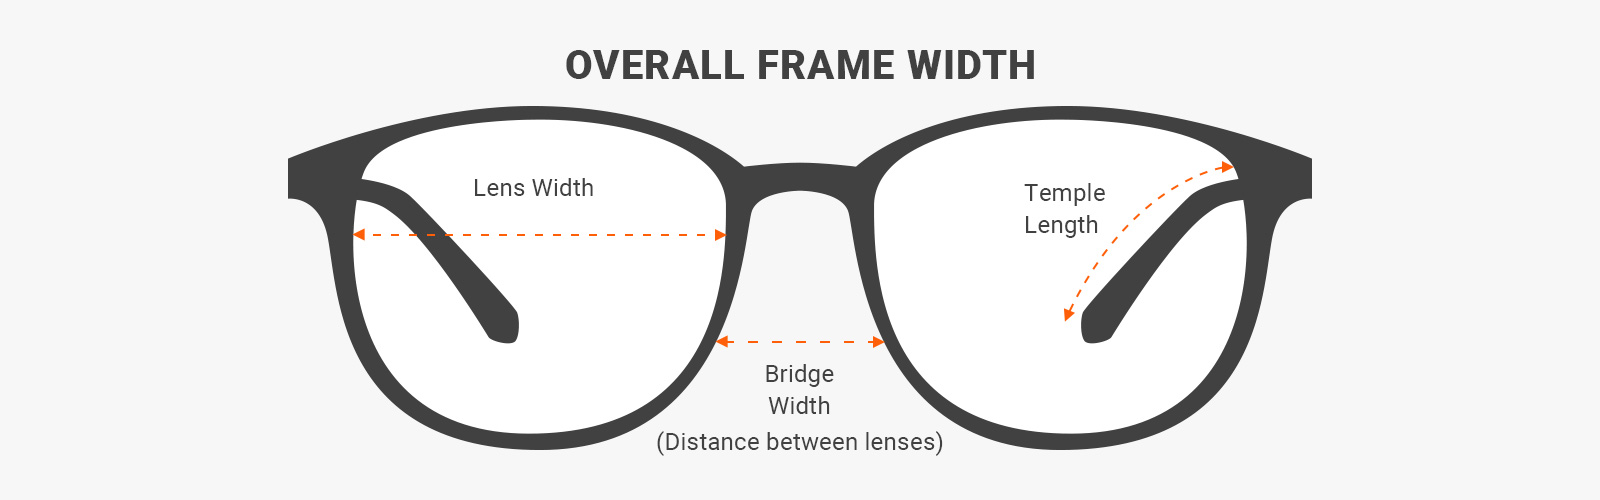 how to read glasses measurements - what is lens width, bridge width and temple lenght